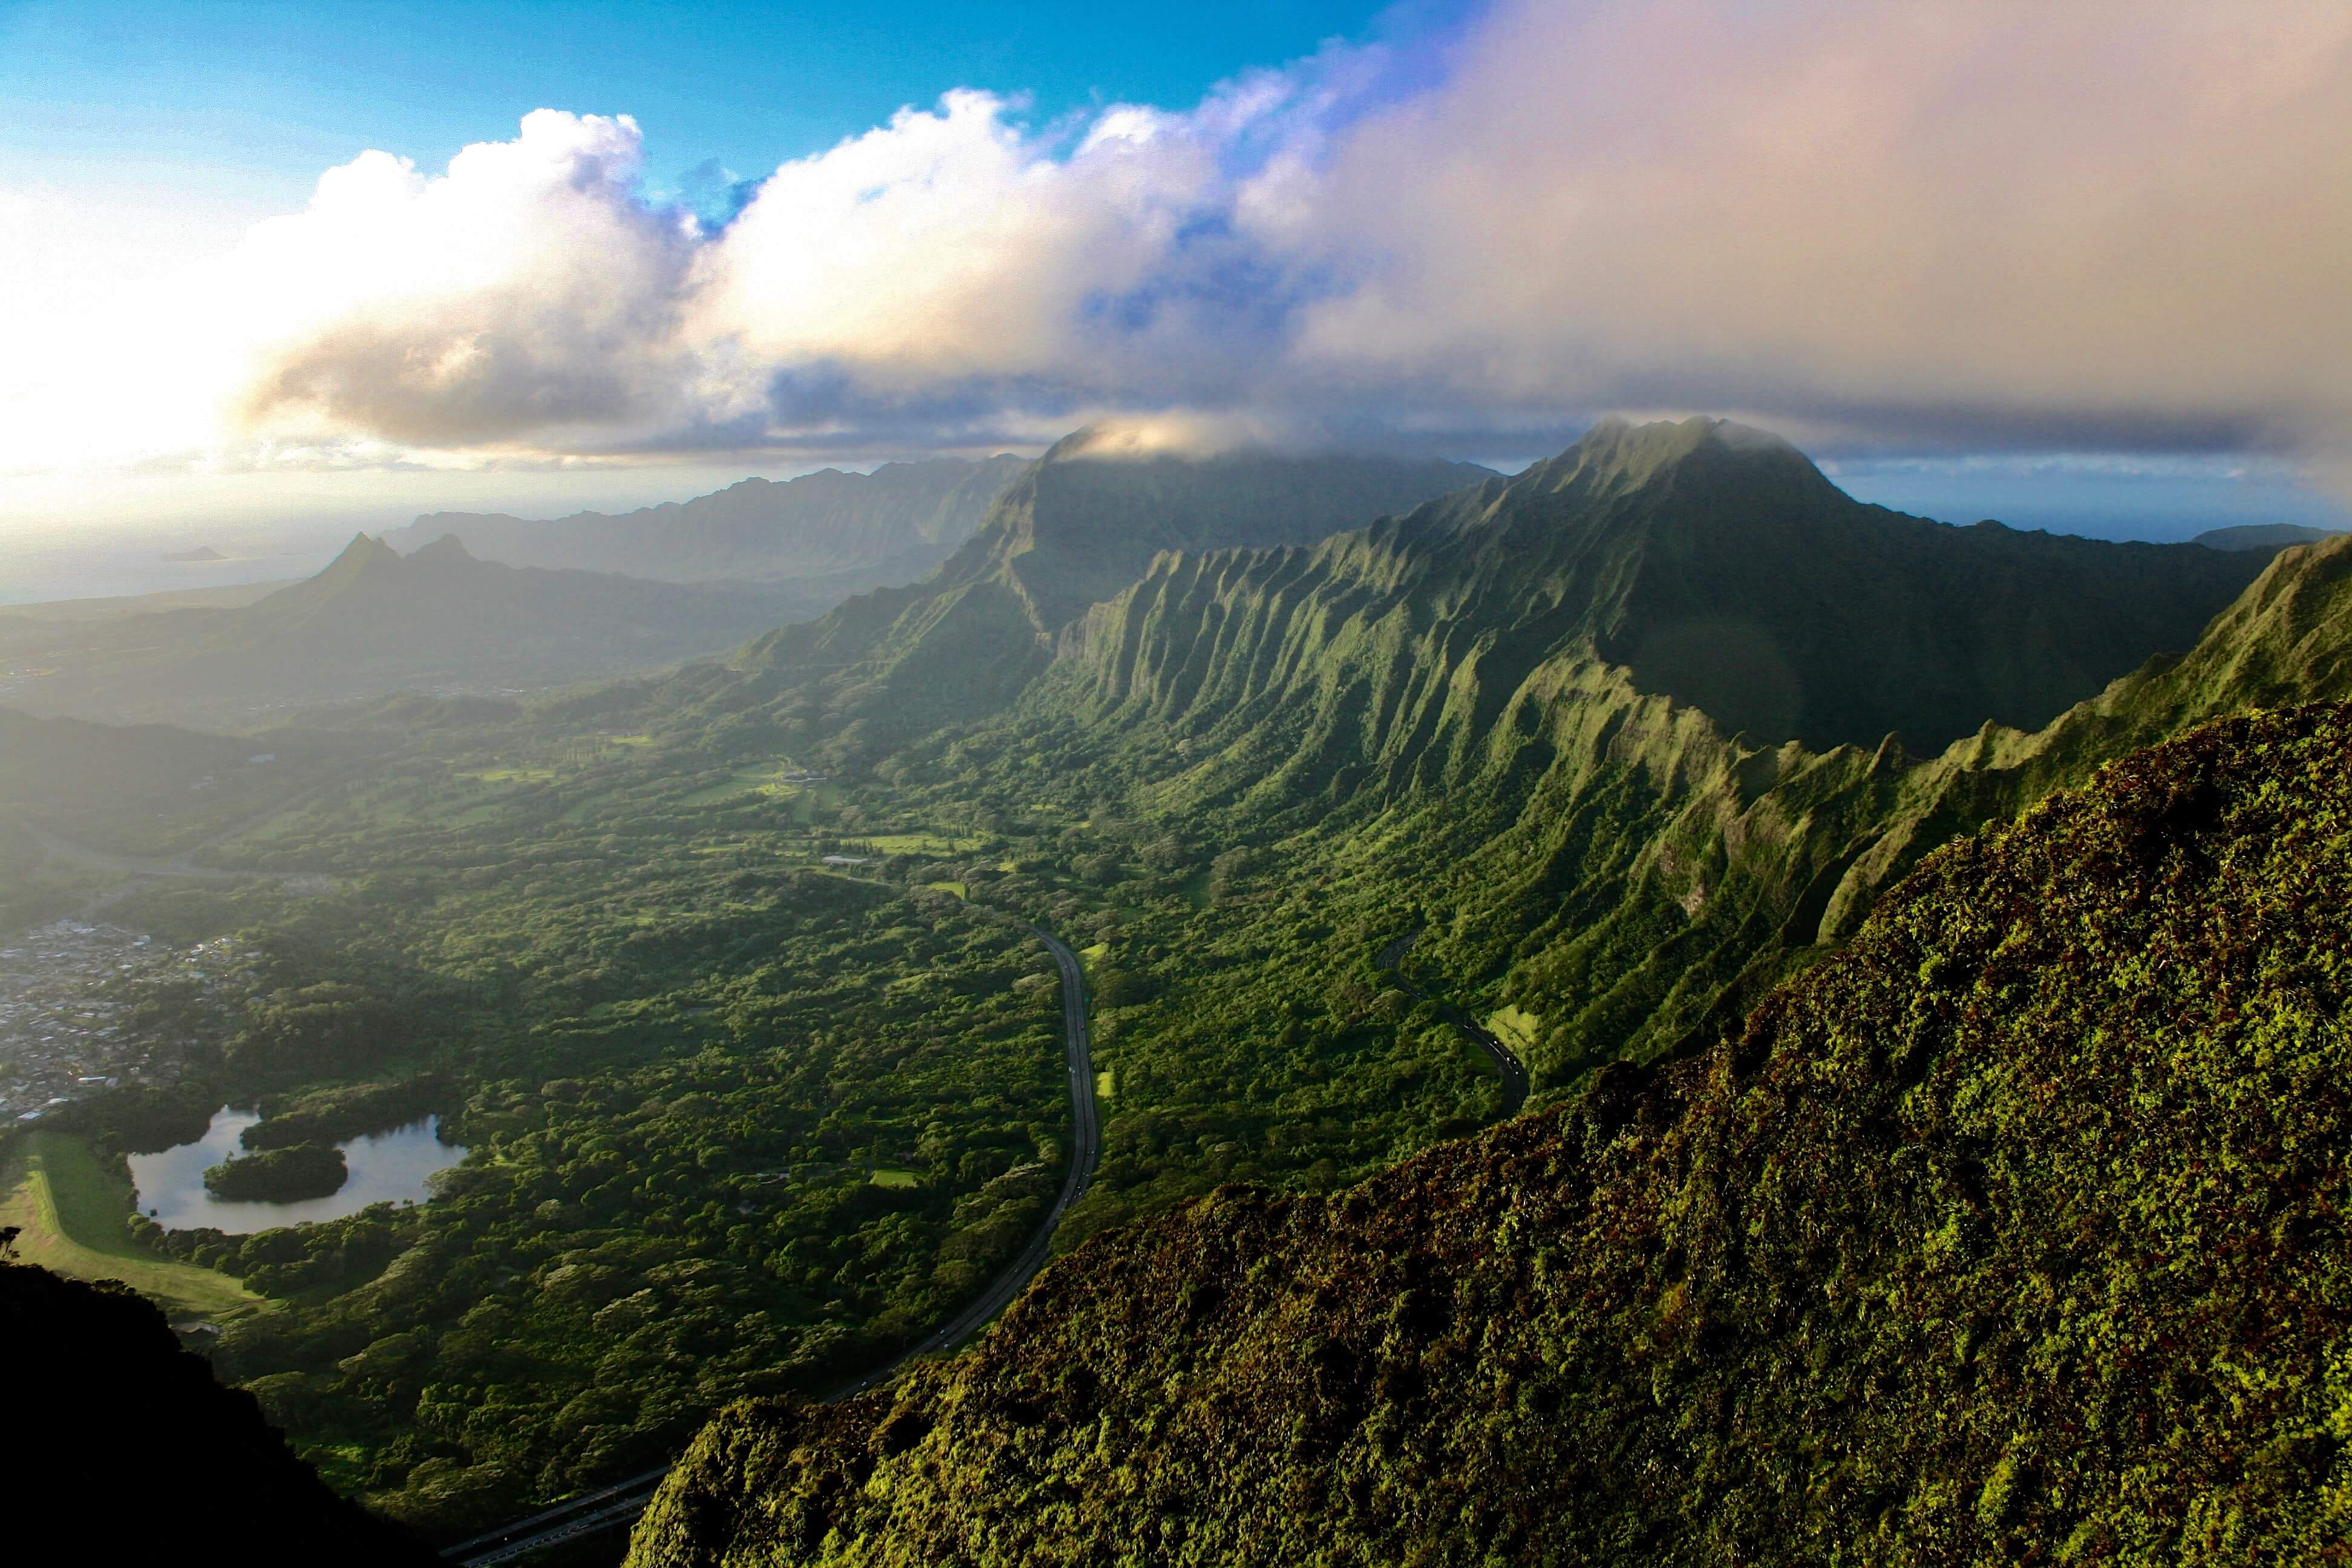 kaneohe, hawaii